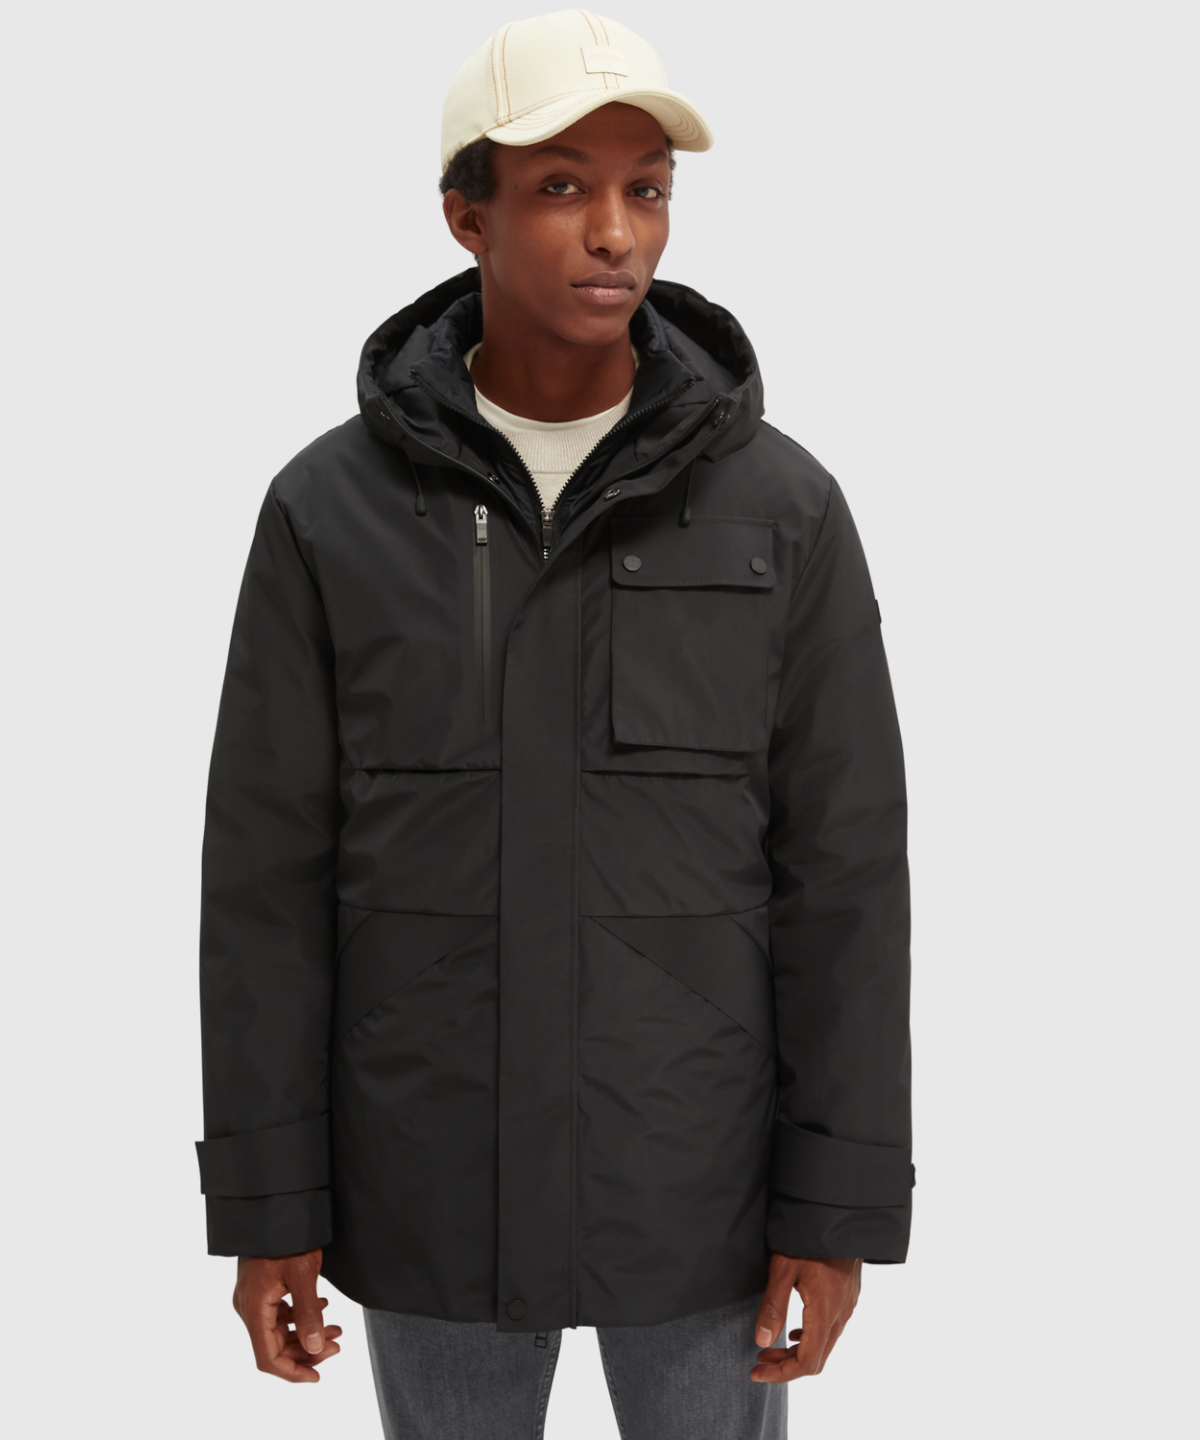 Recycled poly mid-length 2in1 jacket with Repreve® padding